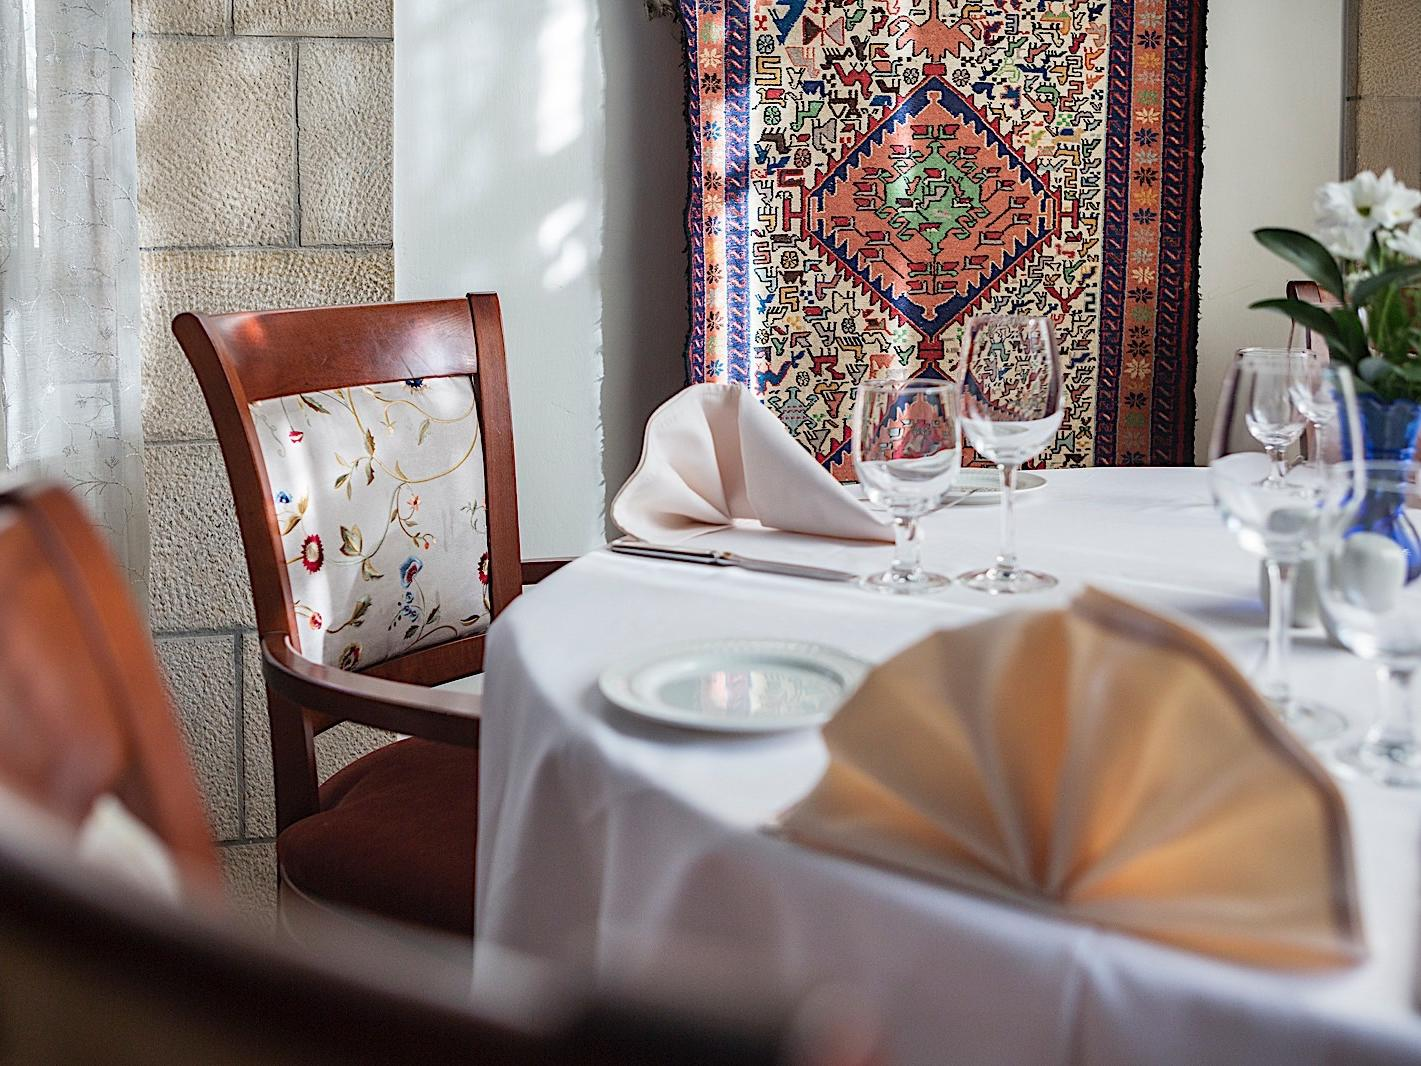 The Arabesque Restaurant at The American Colony Hotel in Jerusalem